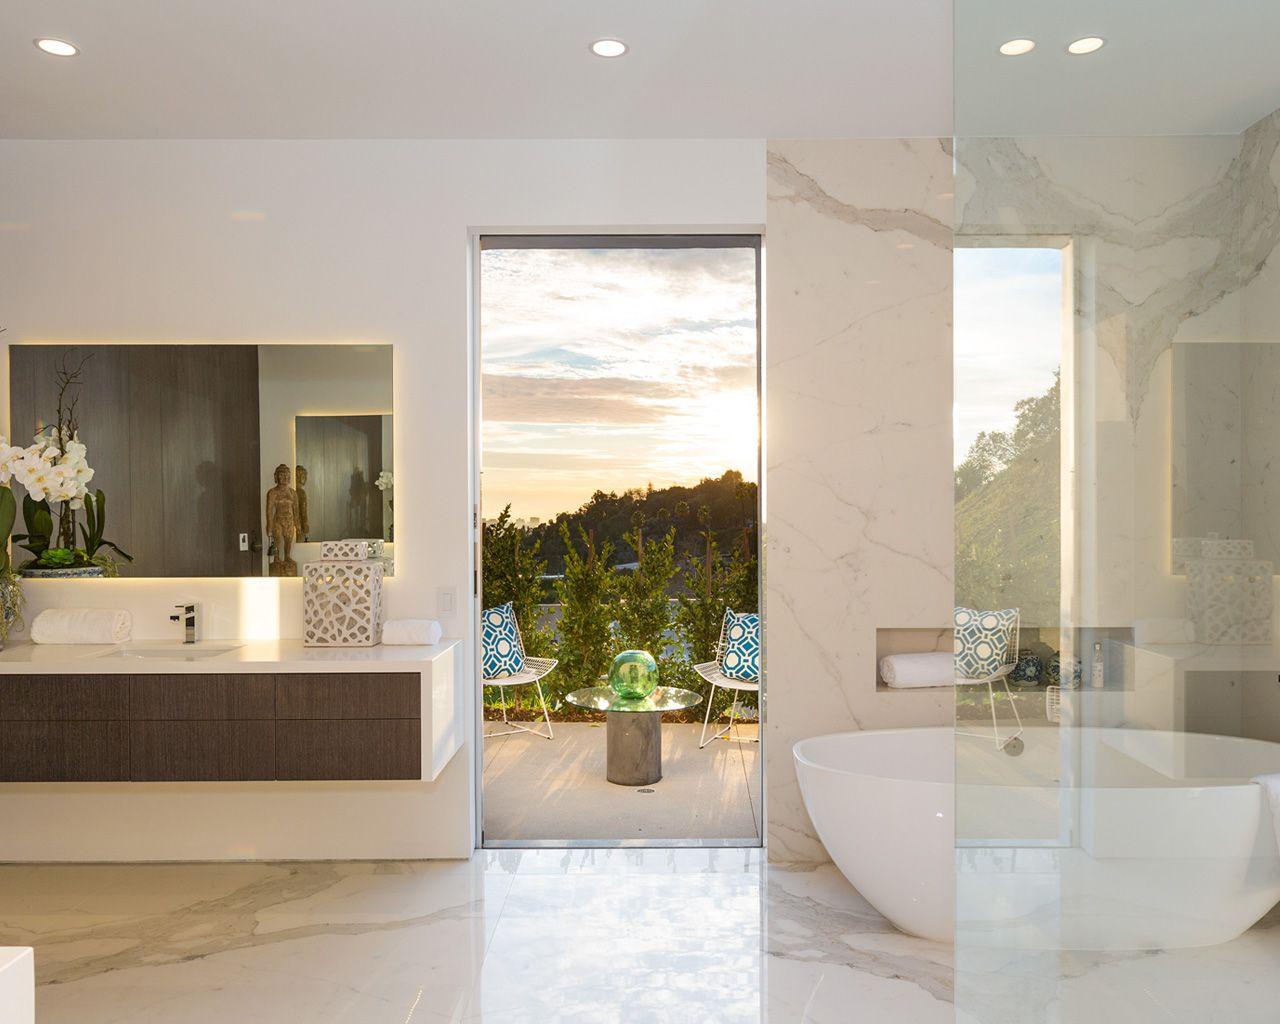 Mirrored Calacatta, spoon tub & floating cabinets | Modern Master ...